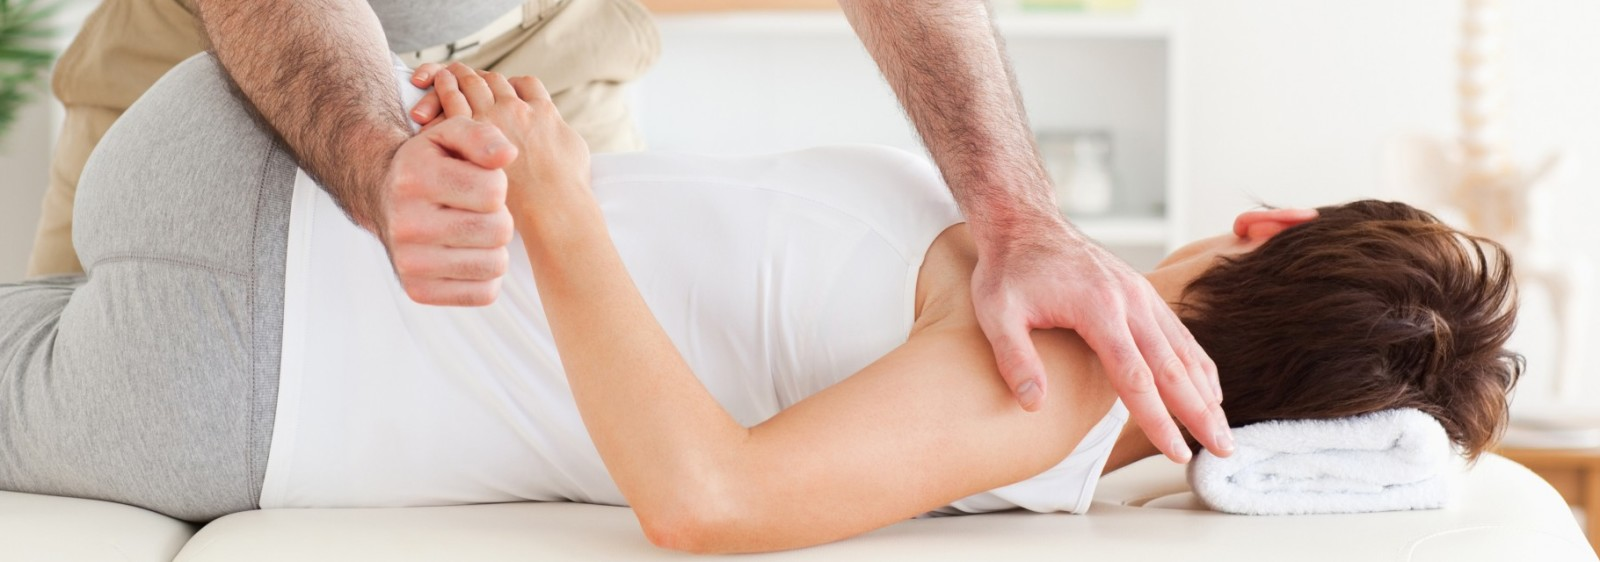 Chiropractic Care Blog